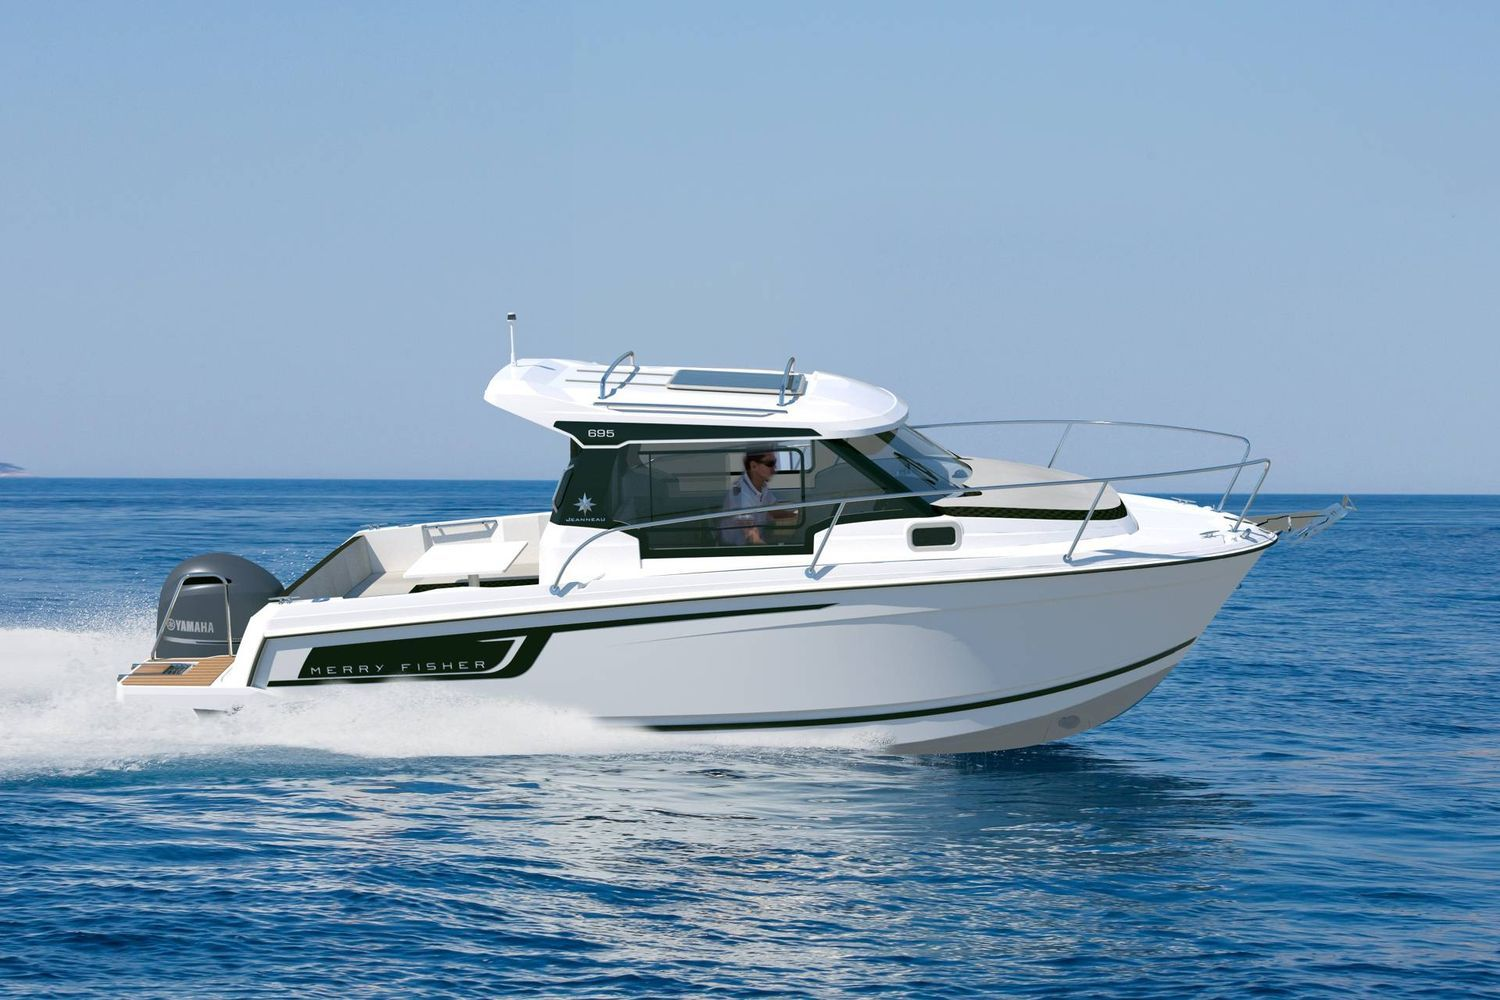 Jeanneau Merry Fisher 695 - on the water